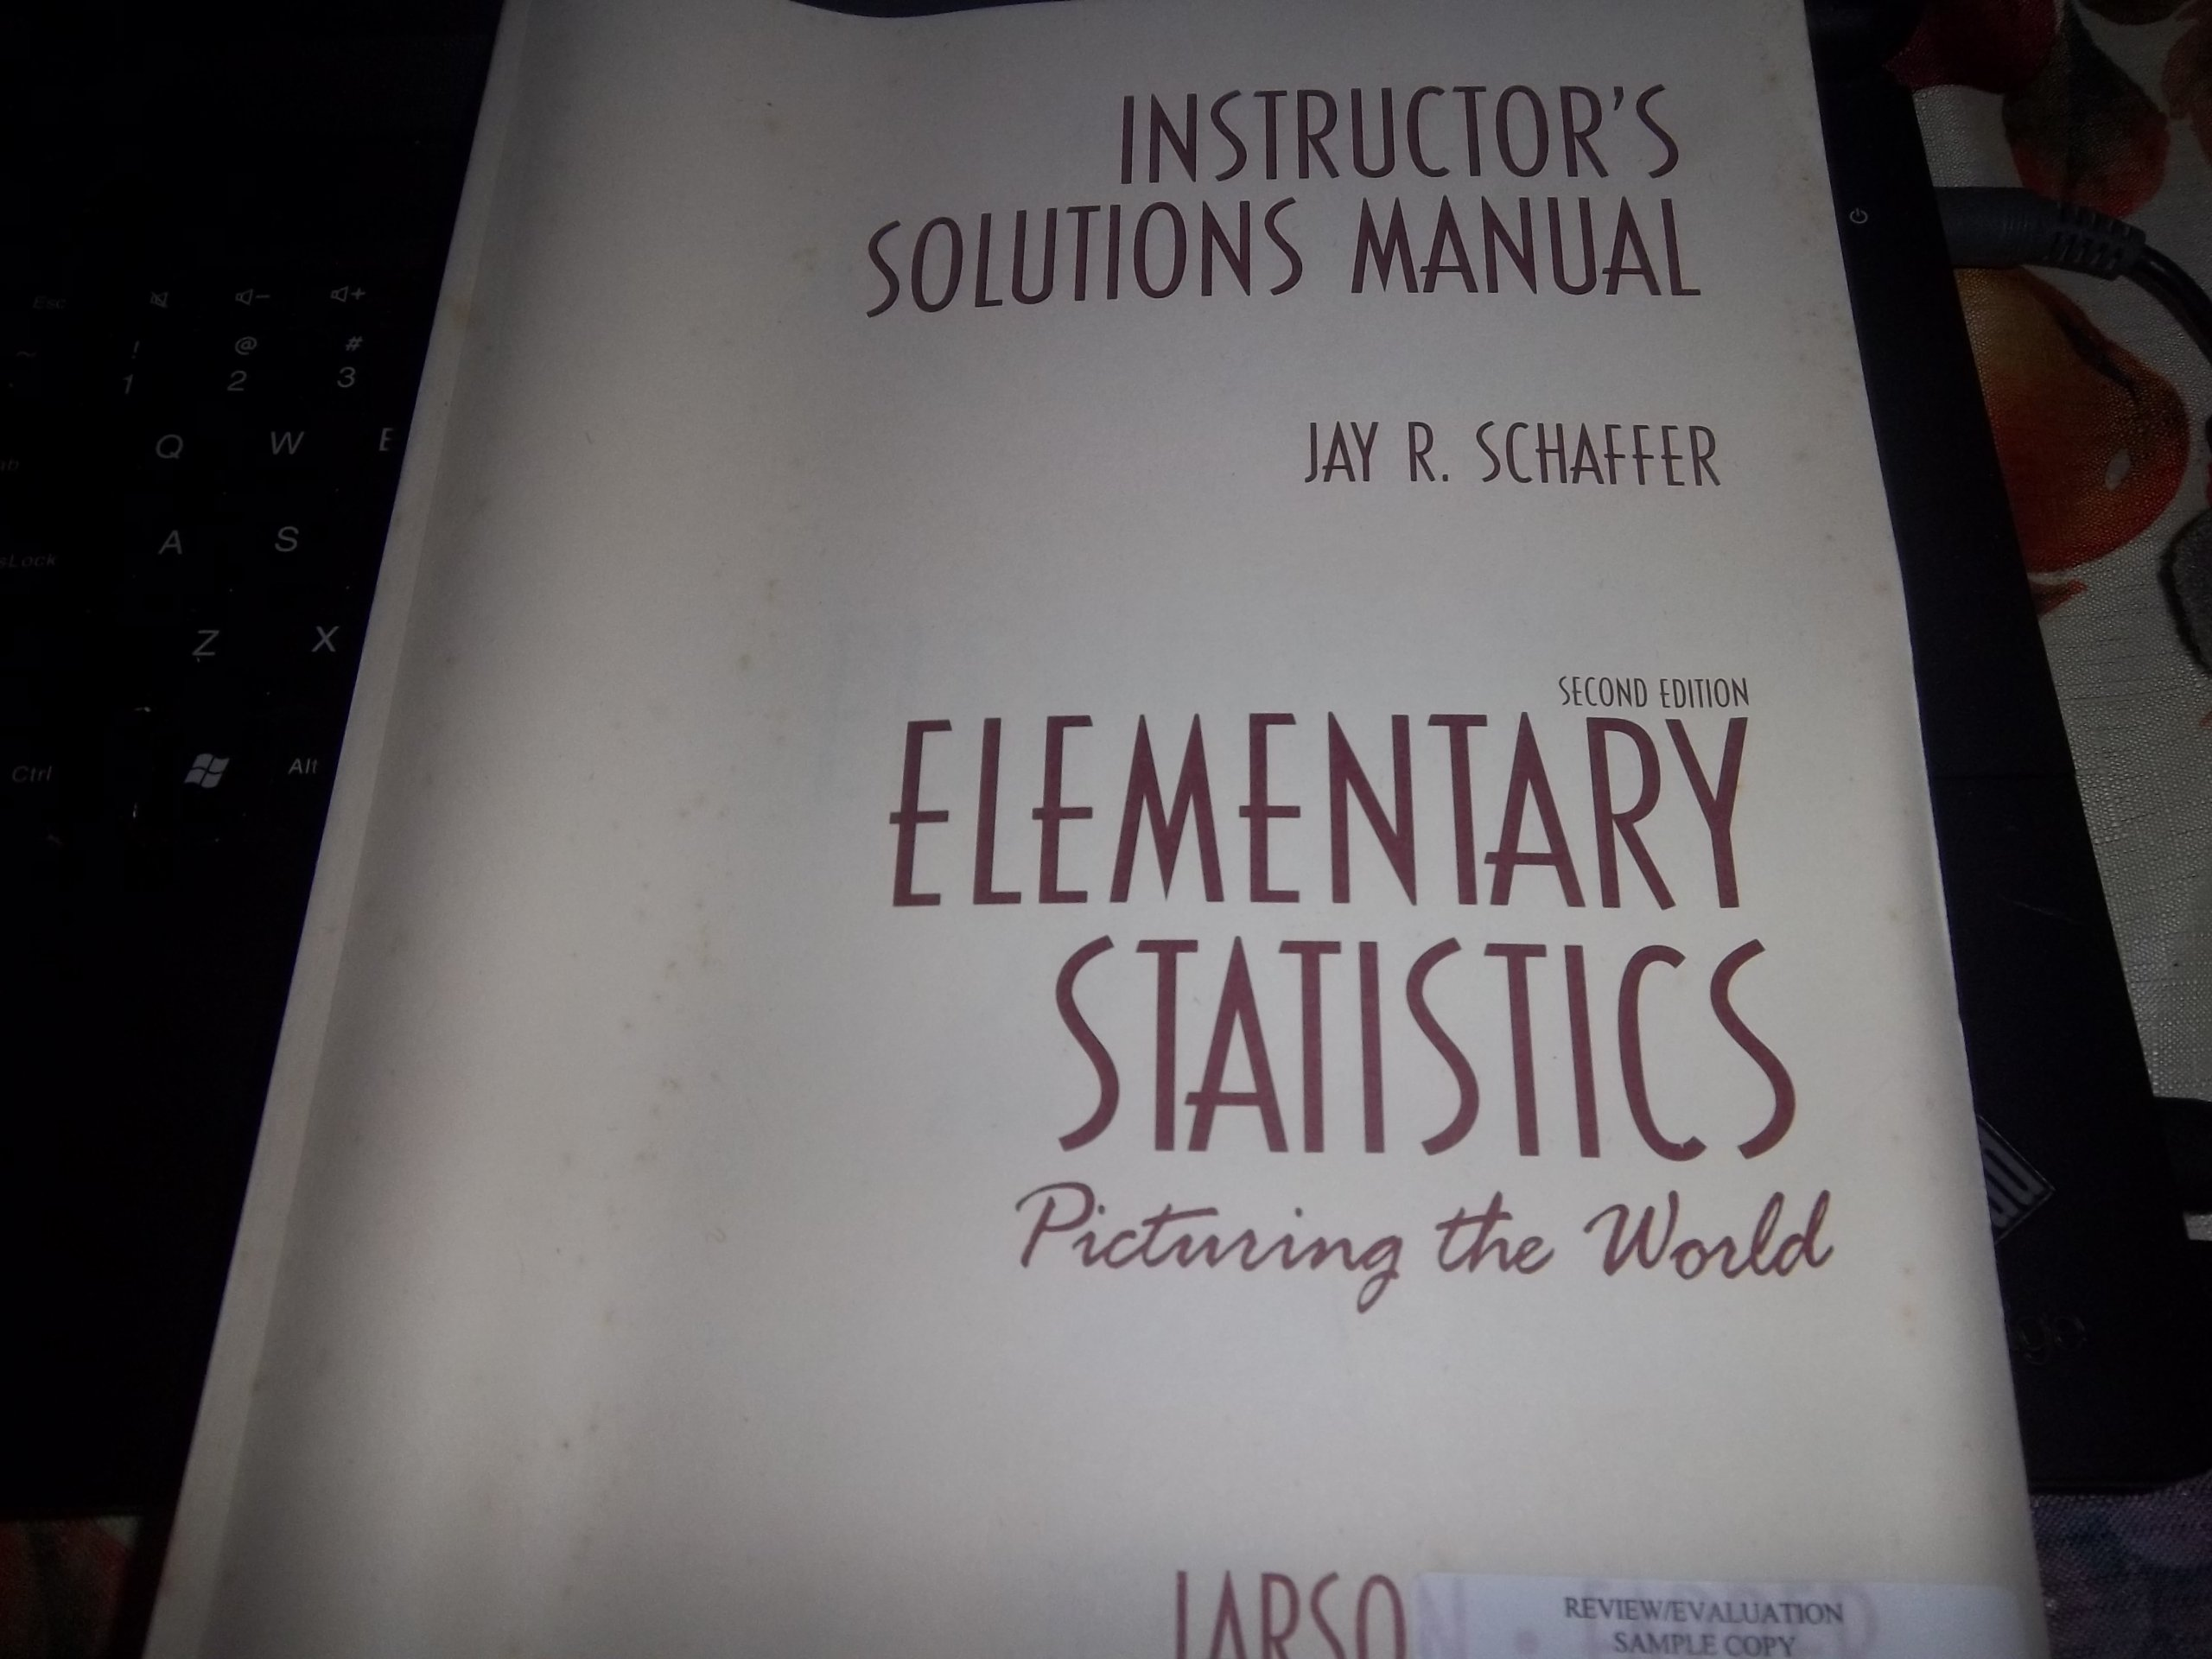 Instructors Solutions Manual: Elementary Statistics, Picturing the World,  2nd Edition: Ron Larson: 9780130659309: Amazon.com: Books